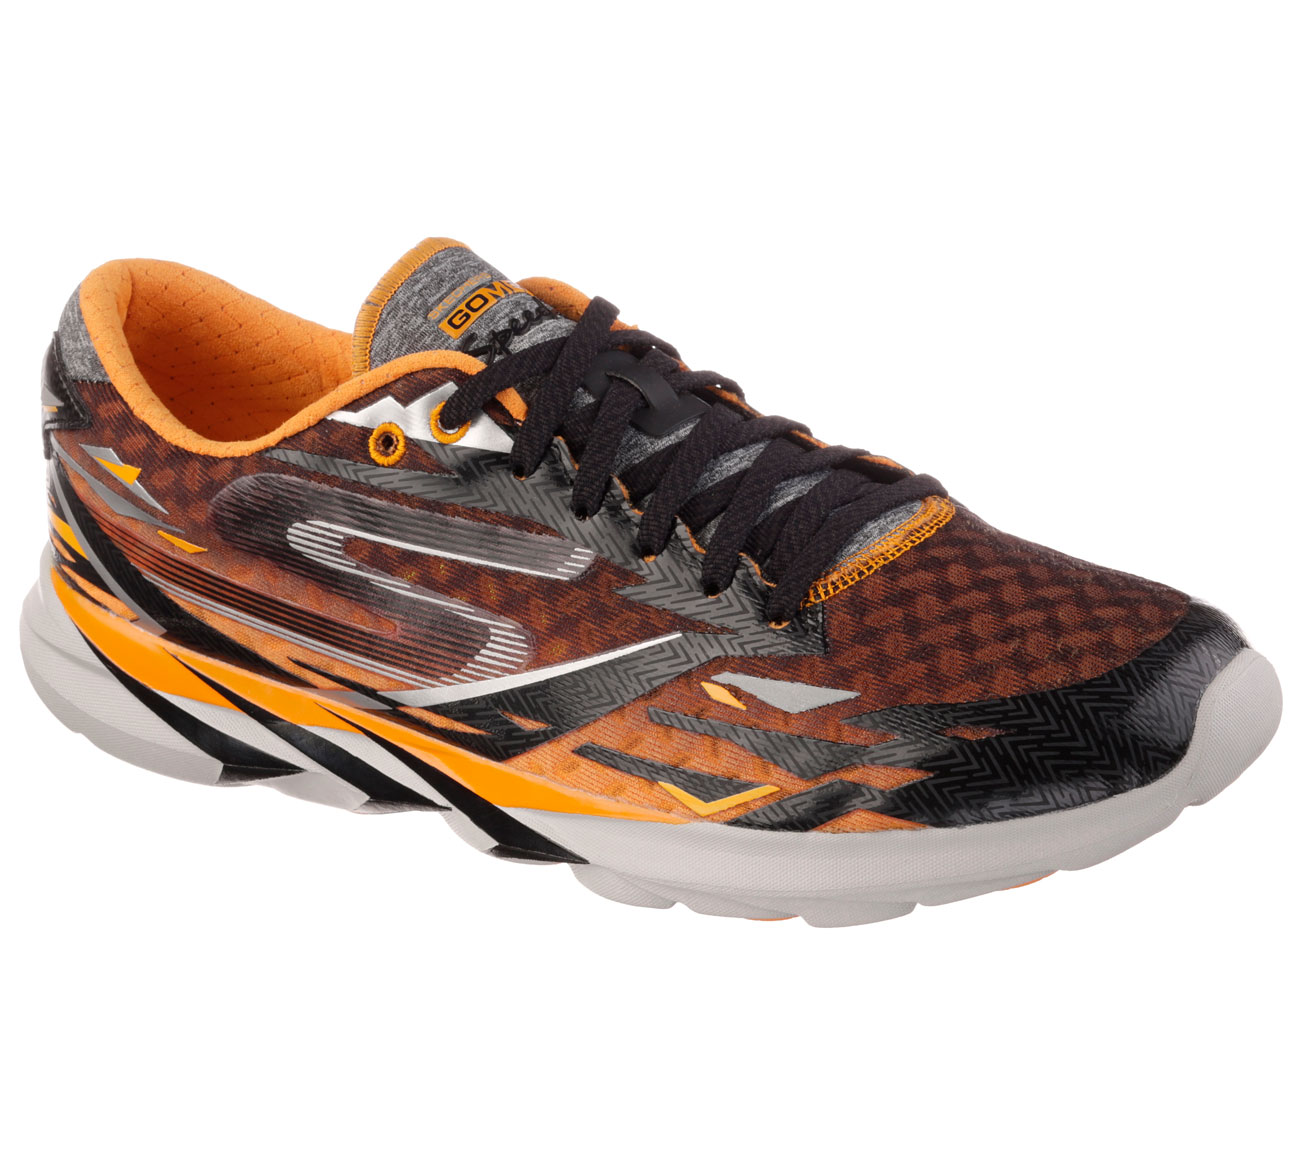 skechers-gorun-speed-nyc-marathon